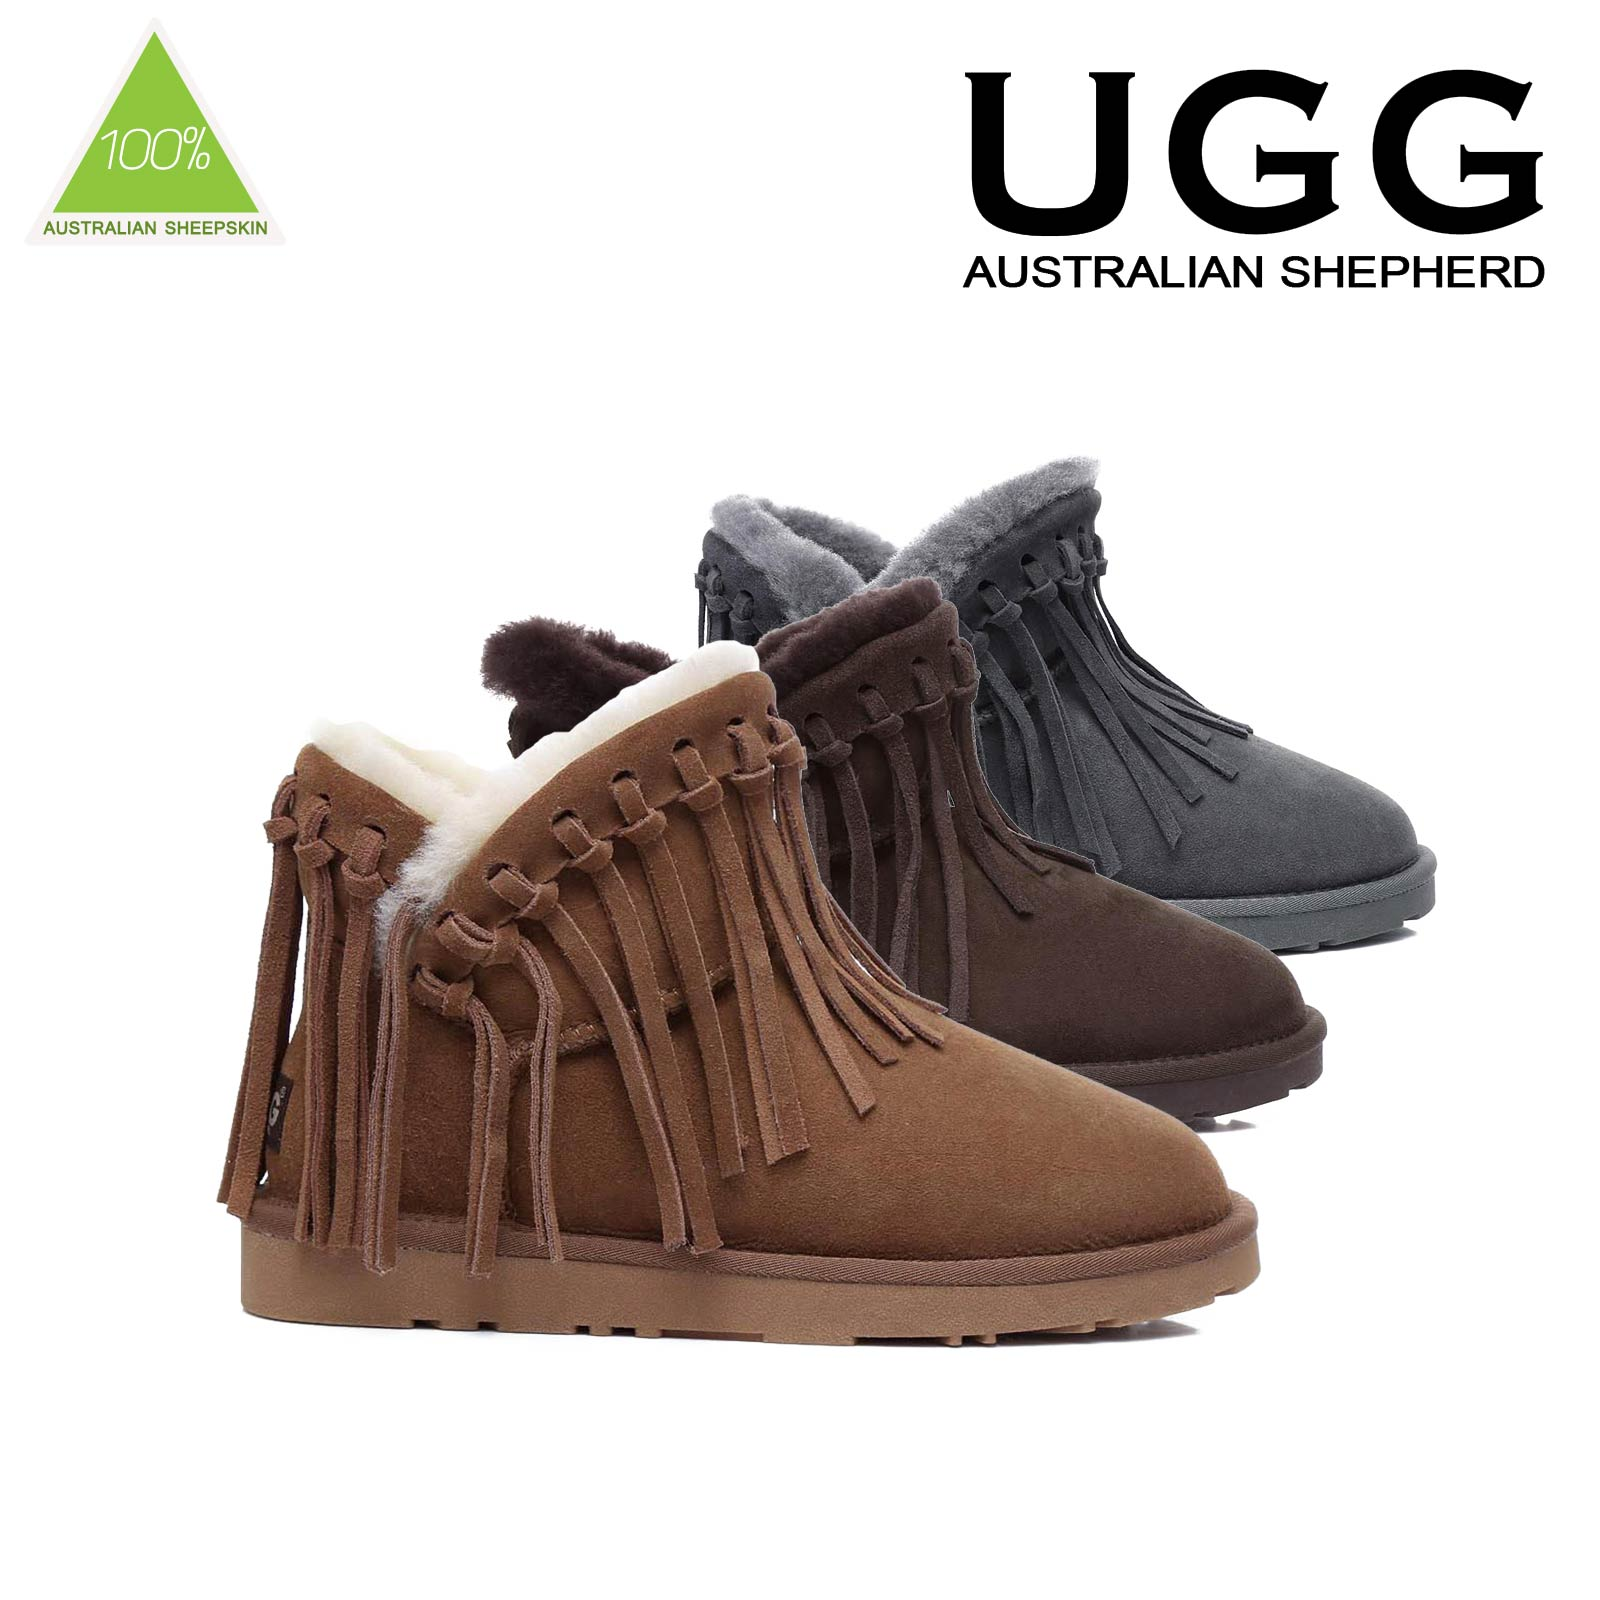 NEW-Ugg-Boots-100-Sheepskin-Short-Fringe-Ankle-